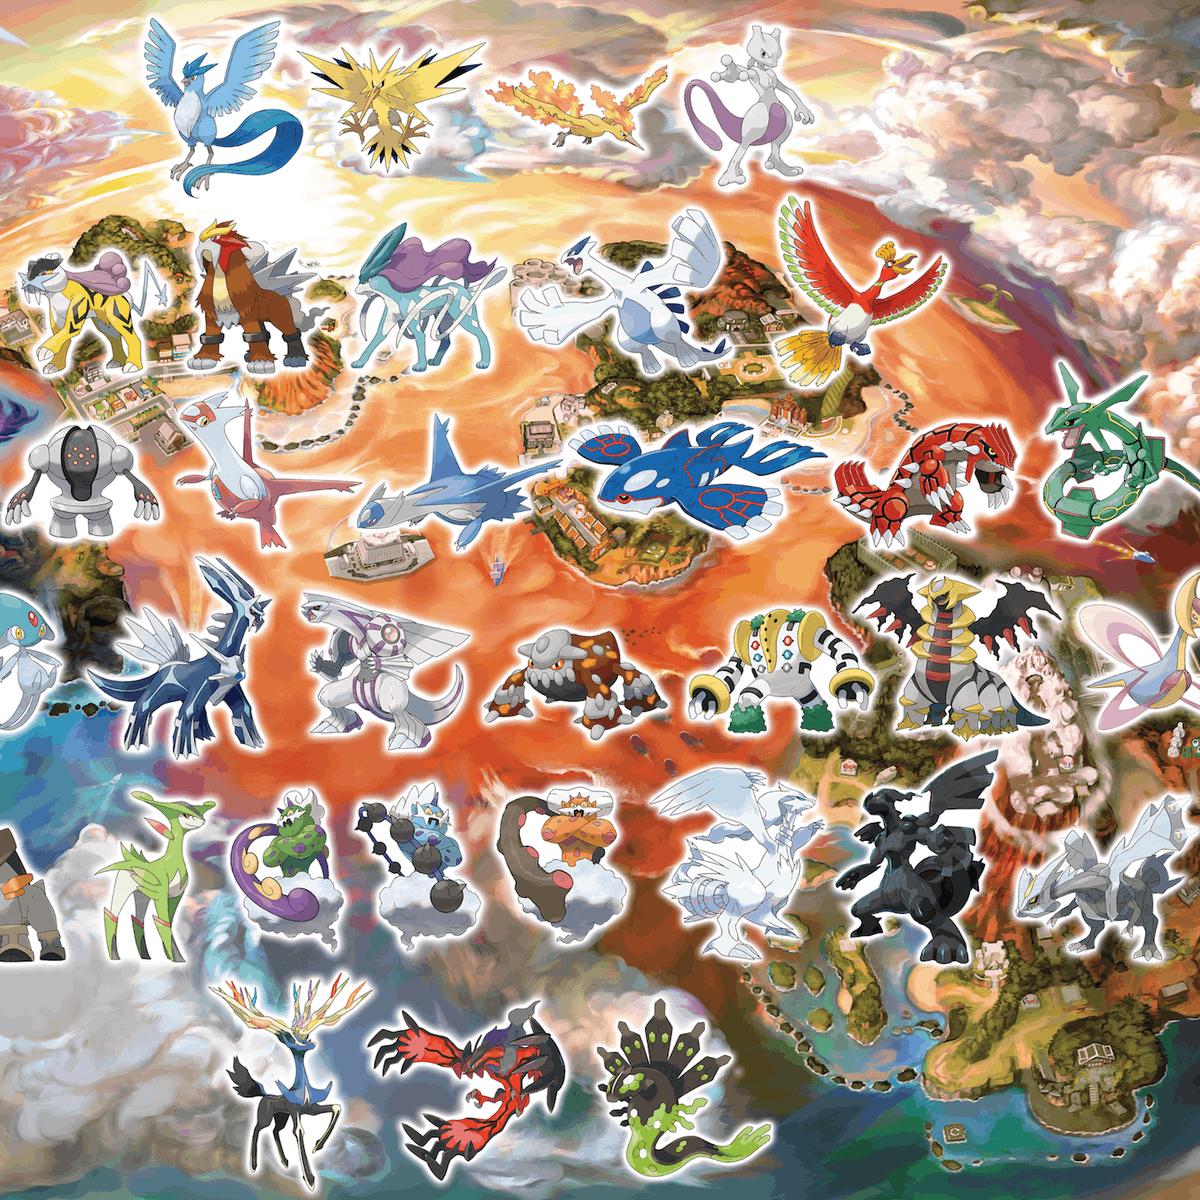 Pokémon Ultra Sun' and 'Moon' Will Let You Catch Every Legendary